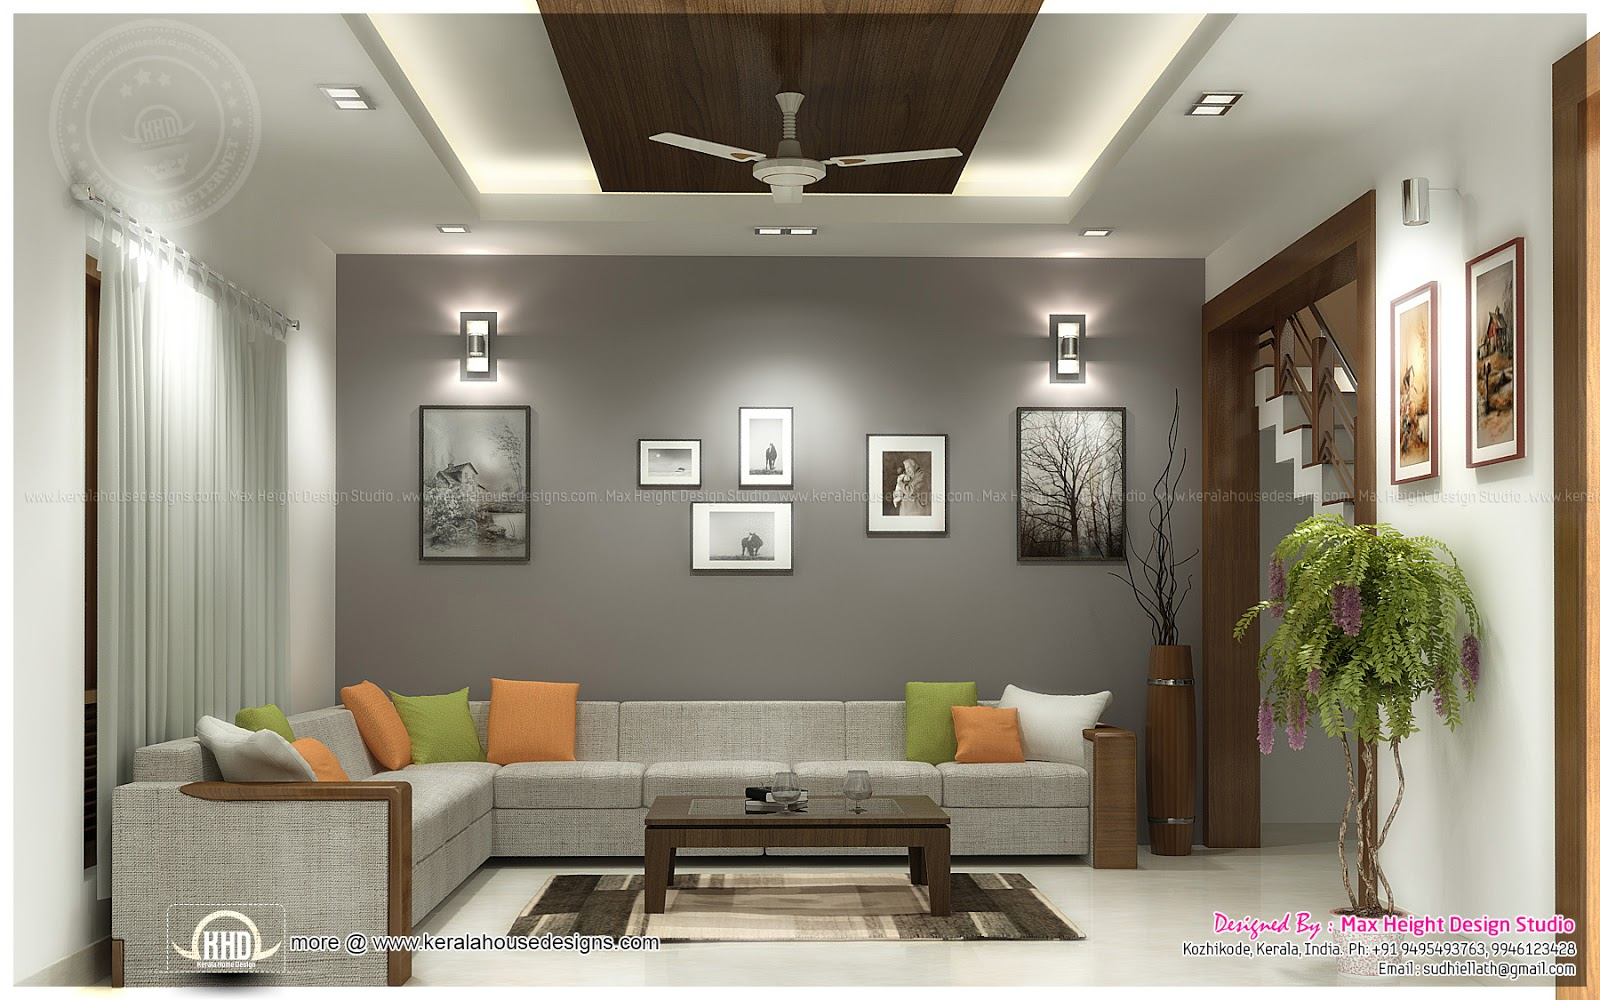 beautiful interior ideas for home kerala home design and floor plans. Black Bedroom Furniture Sets. Home Design Ideas